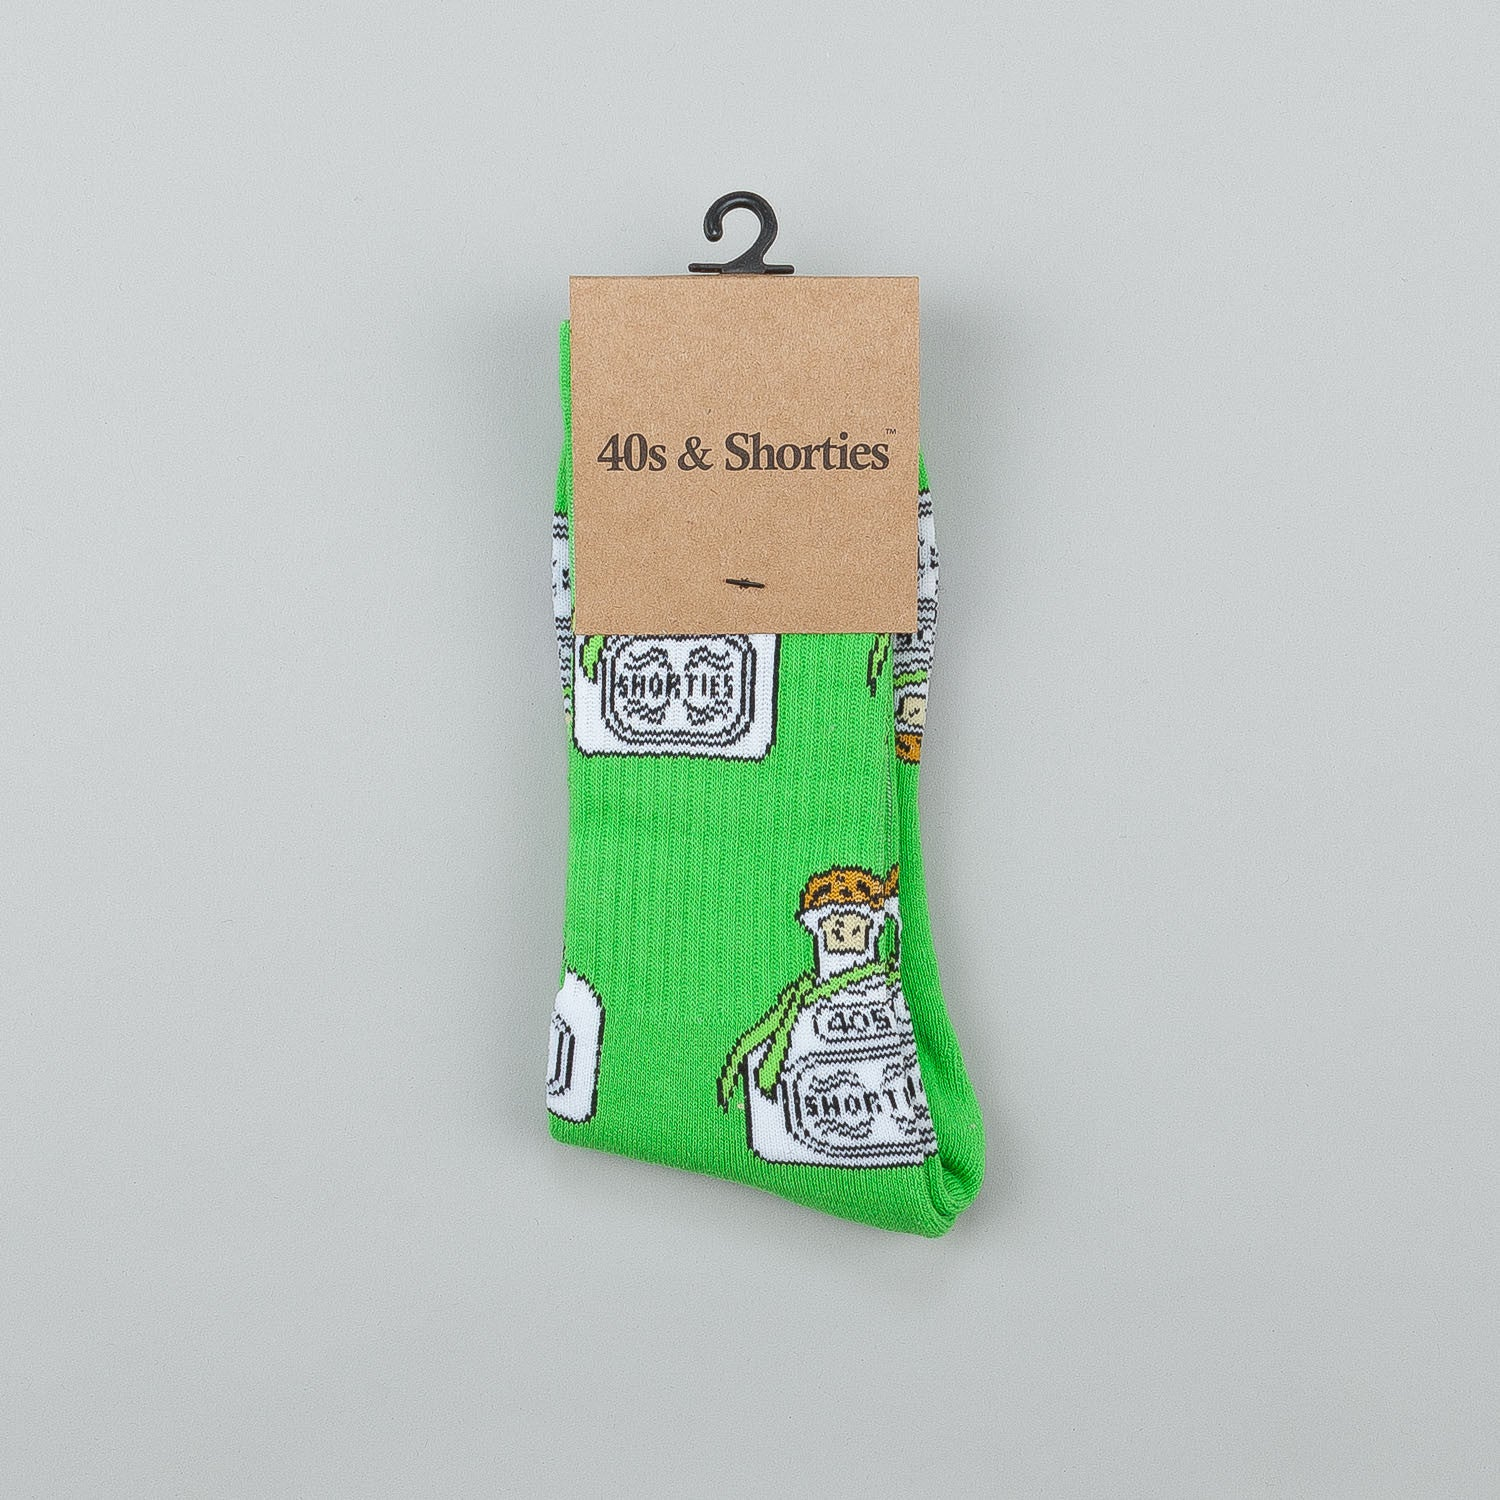 40s & Shorties Tequila Socks